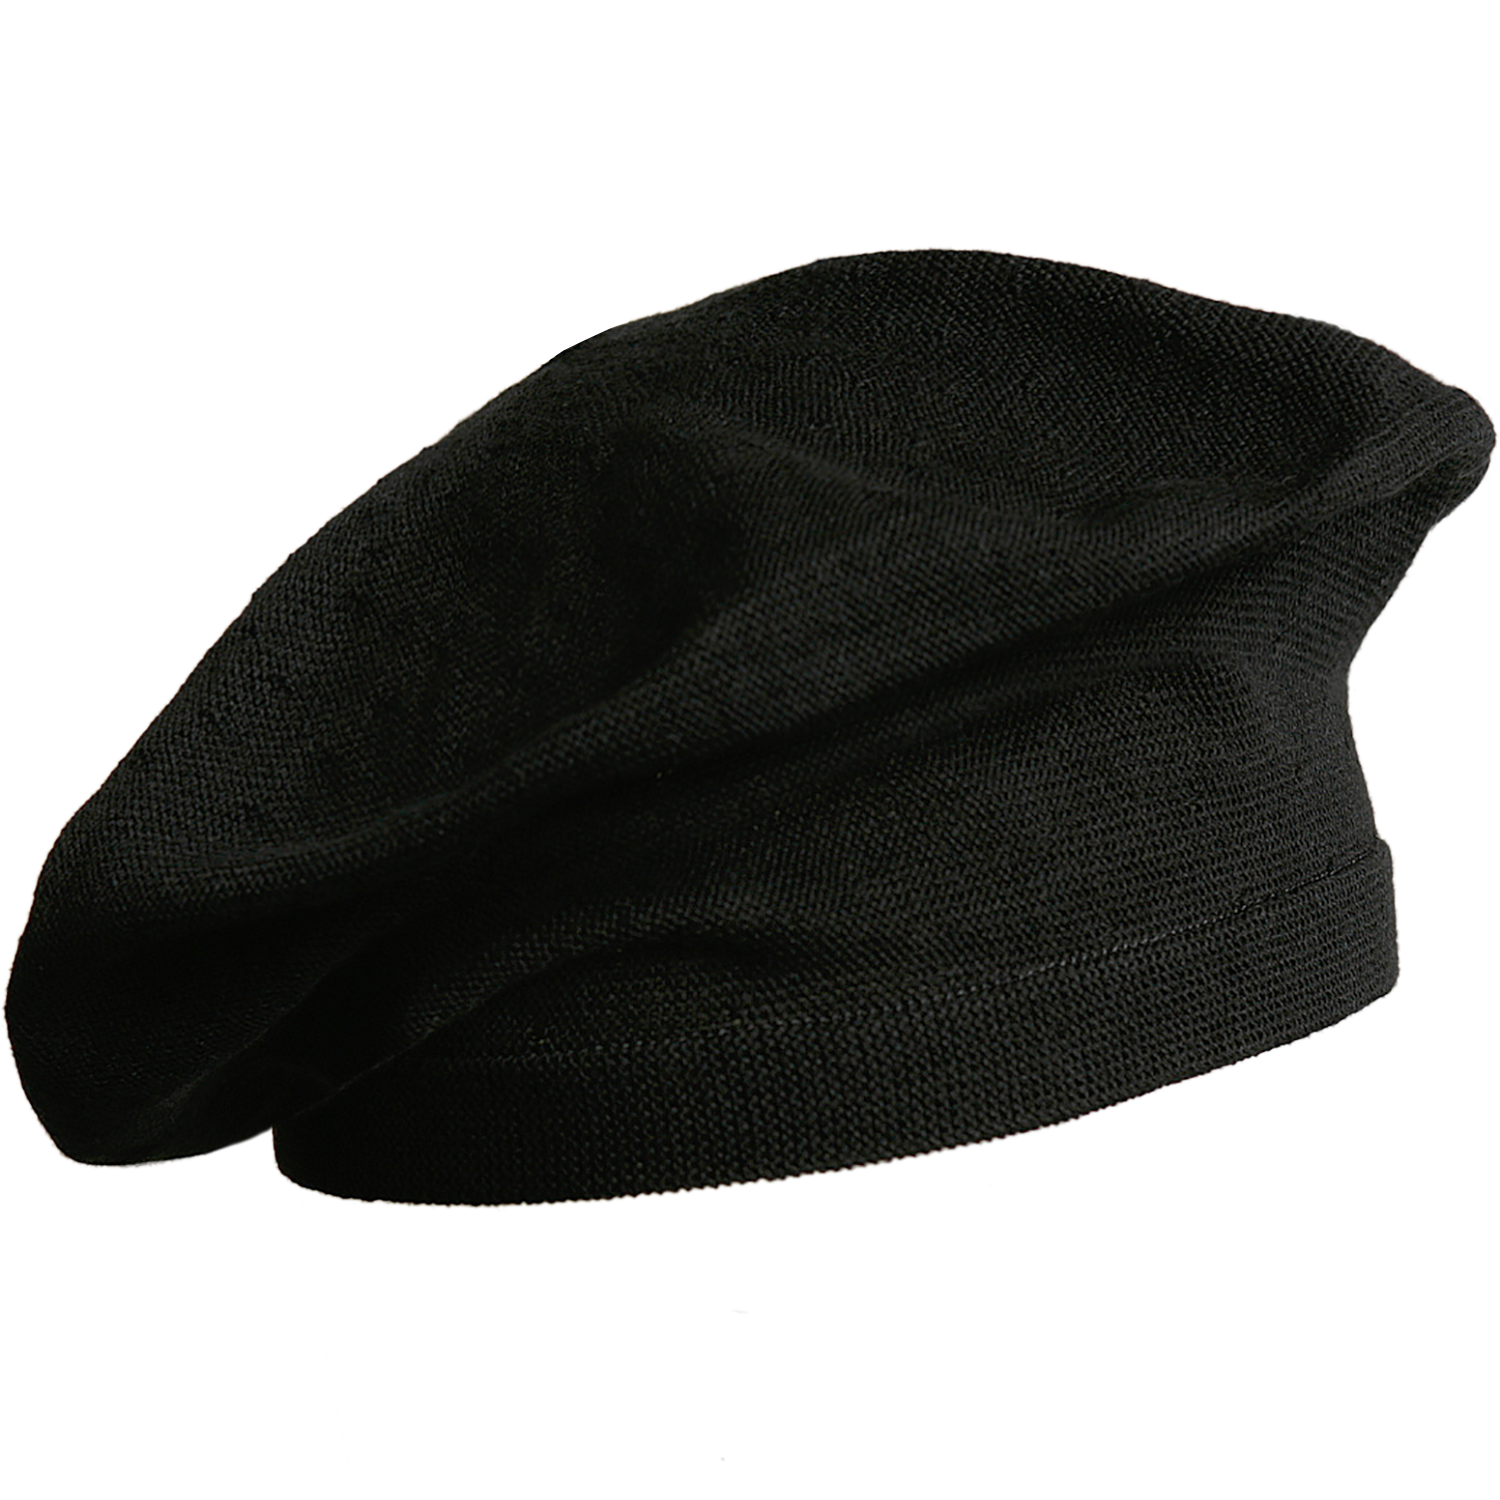 French Beret Hat PNG - 155825